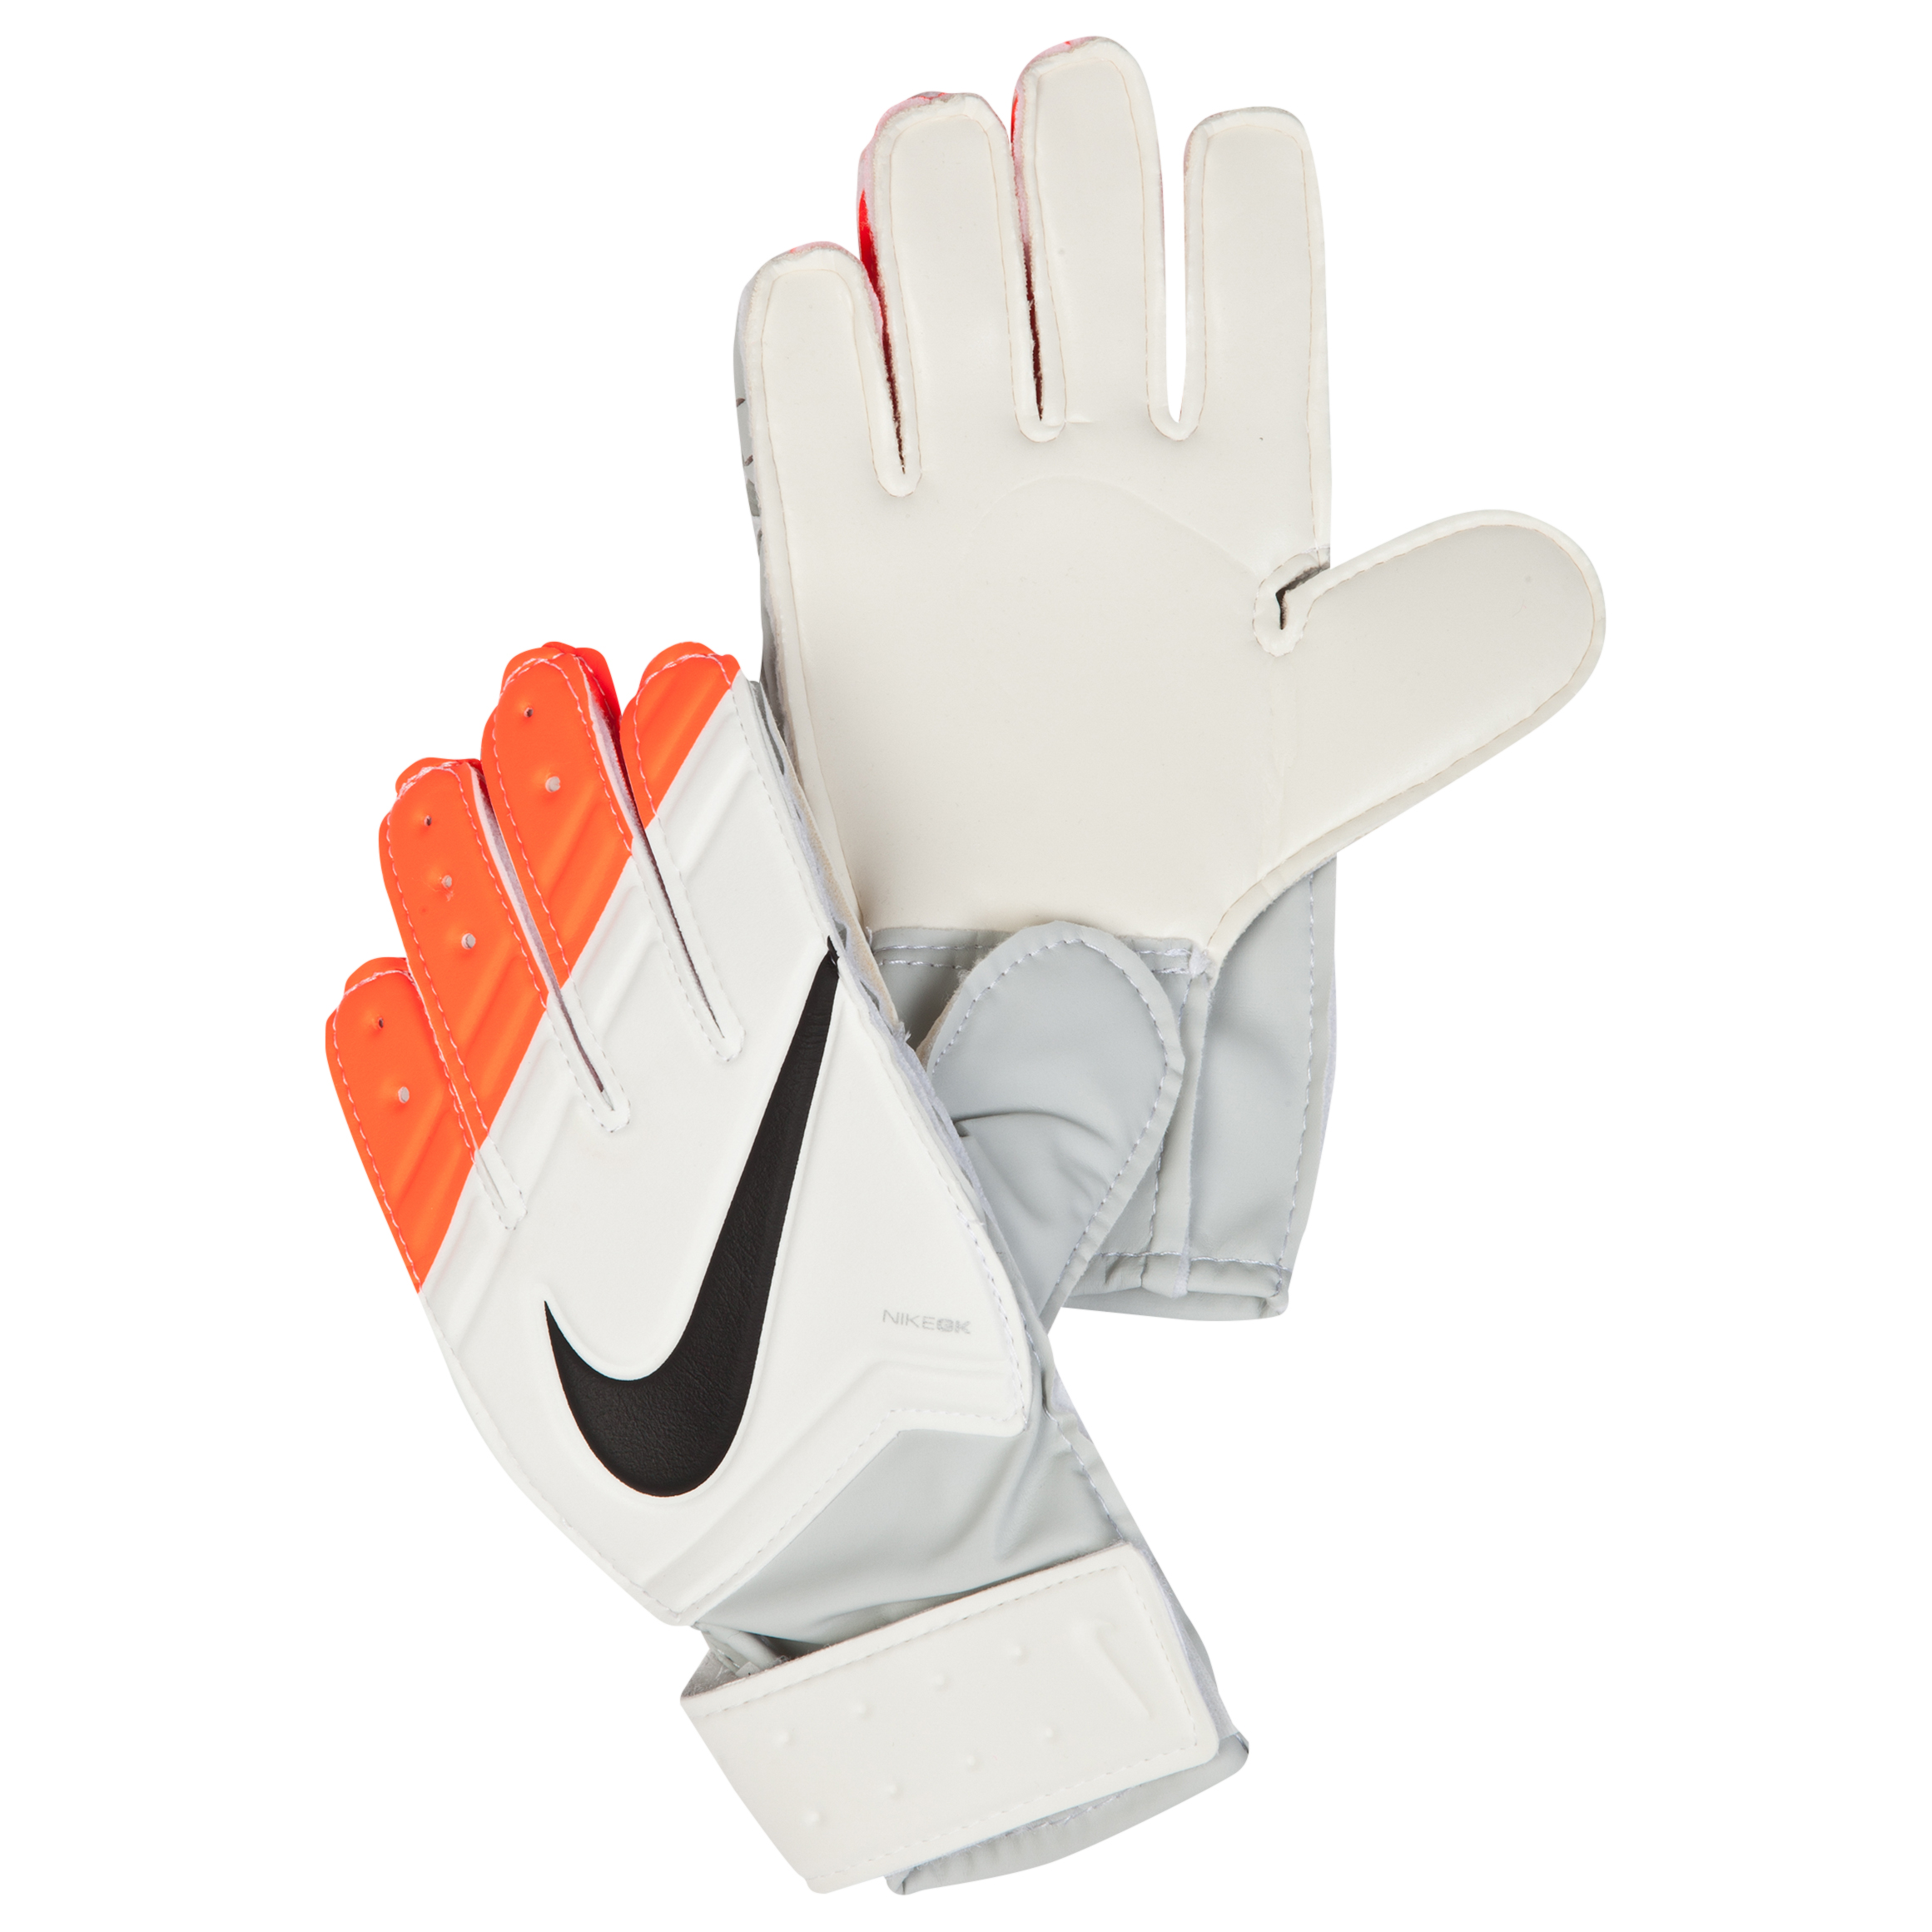 Nike Grip Goalkeeper Glove - Kids White